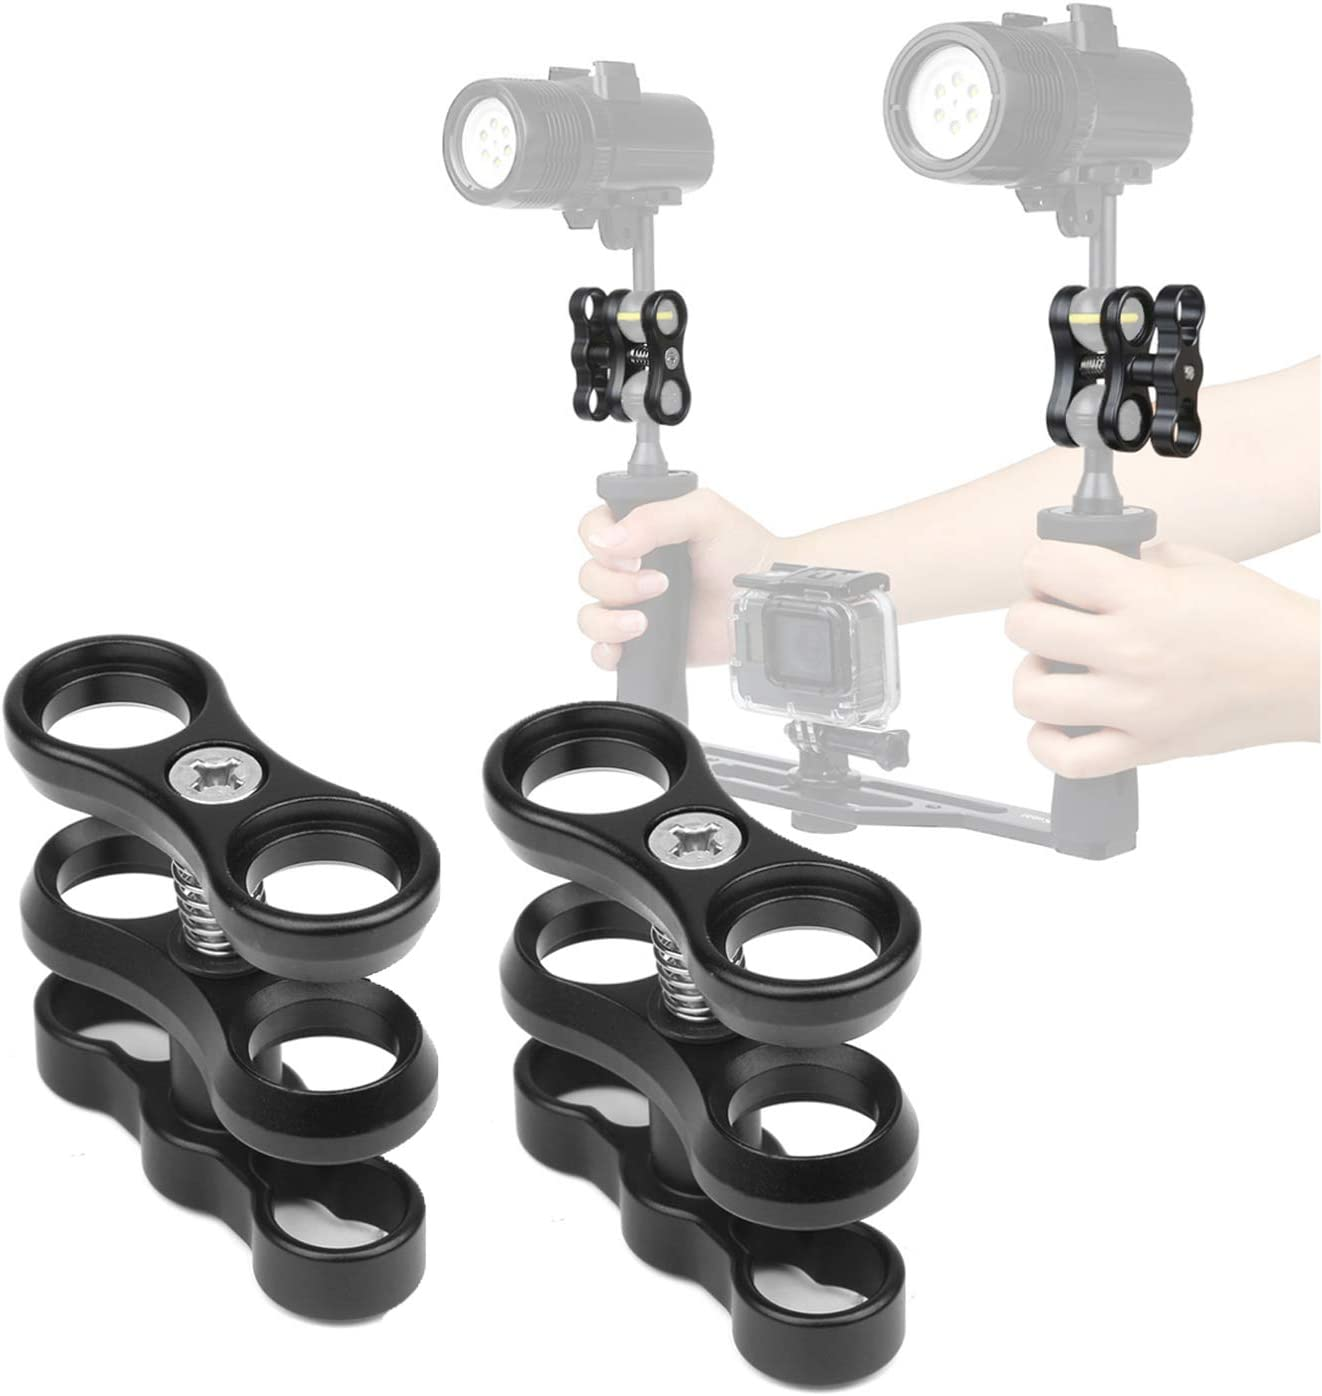 Photography Diving Camera 4 Pcs 1 Aluminum Ball Clamp Mount for Underwater Diving Light Arms Tray System